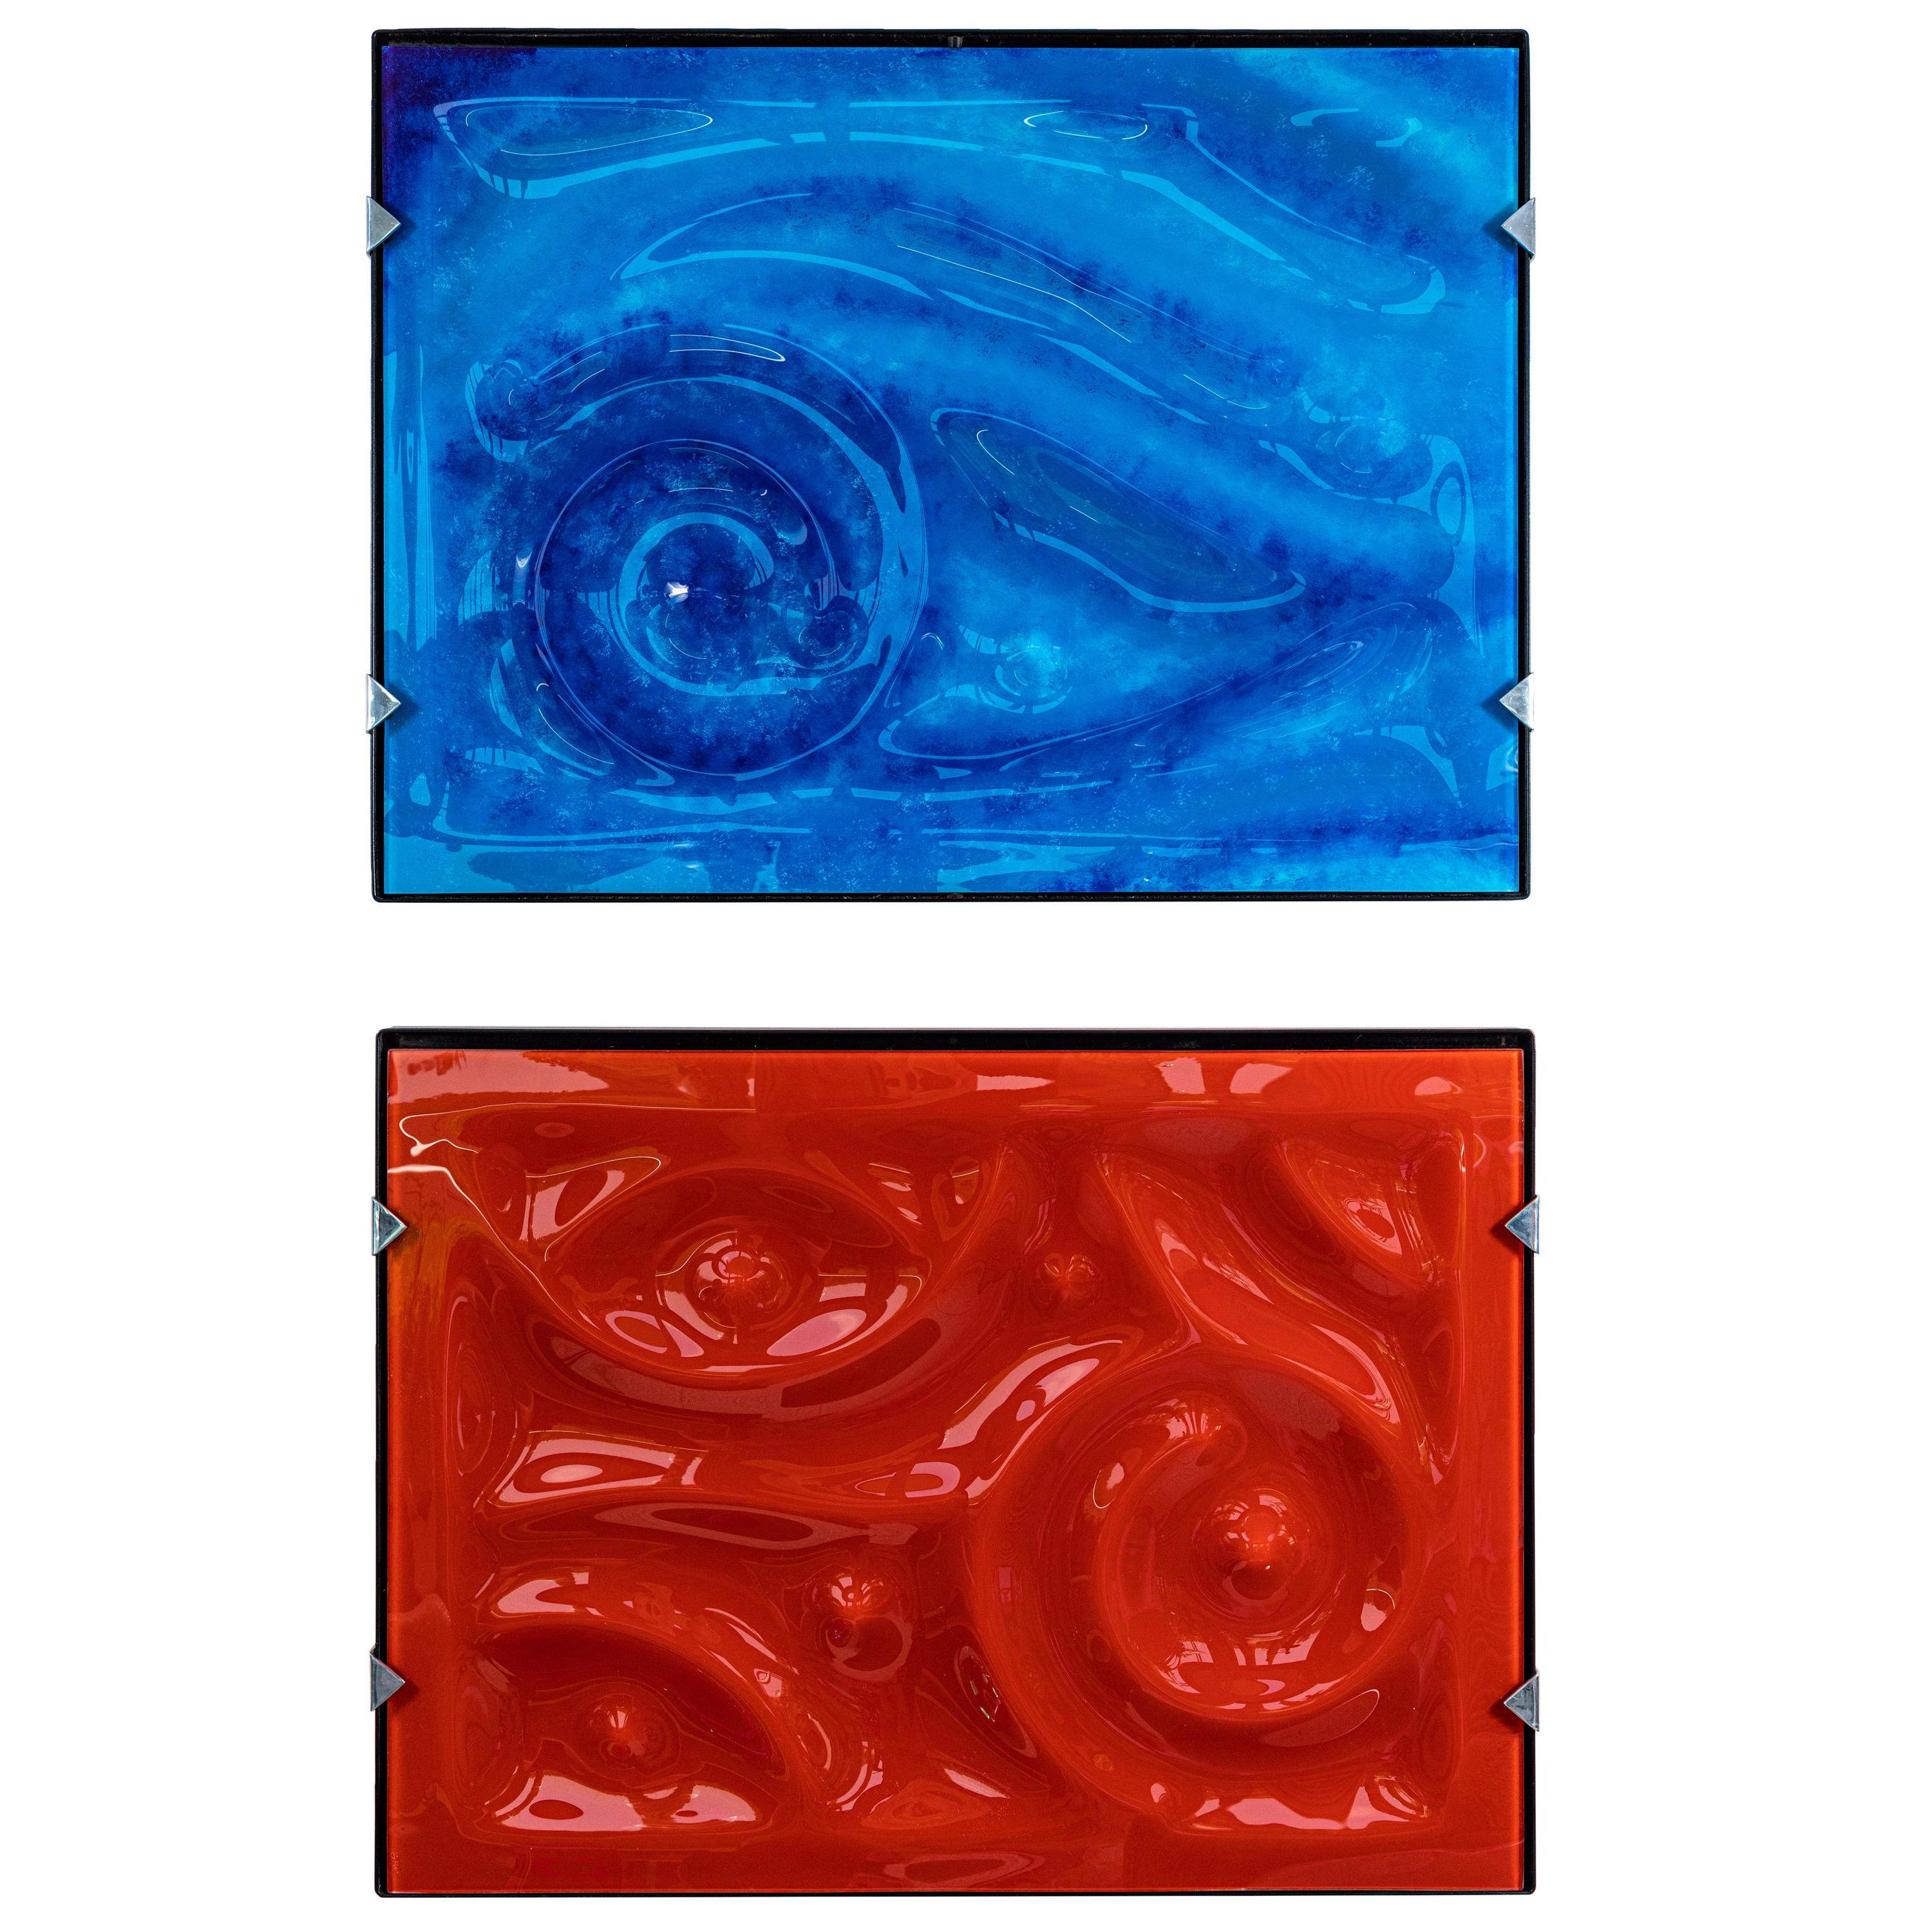 Pair of Glass and Resin Abstract Artworks by Zika